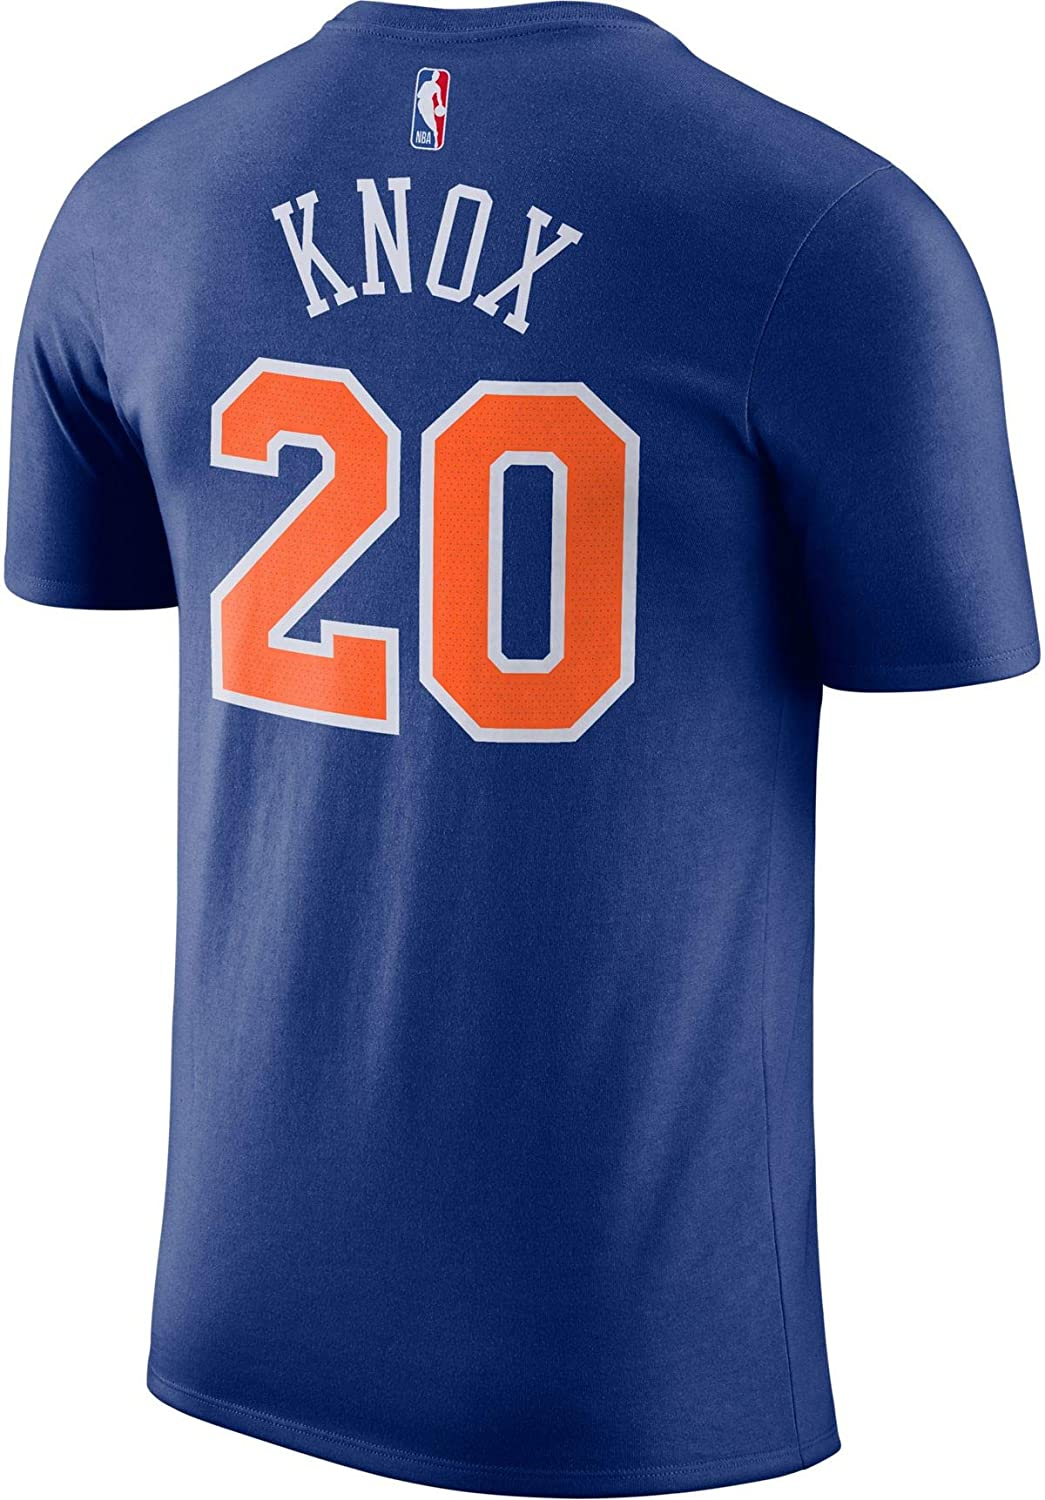 watch 32166 62026 Outerstuff Kevin Knox Youth NBA Player Name and Number T-Shirt